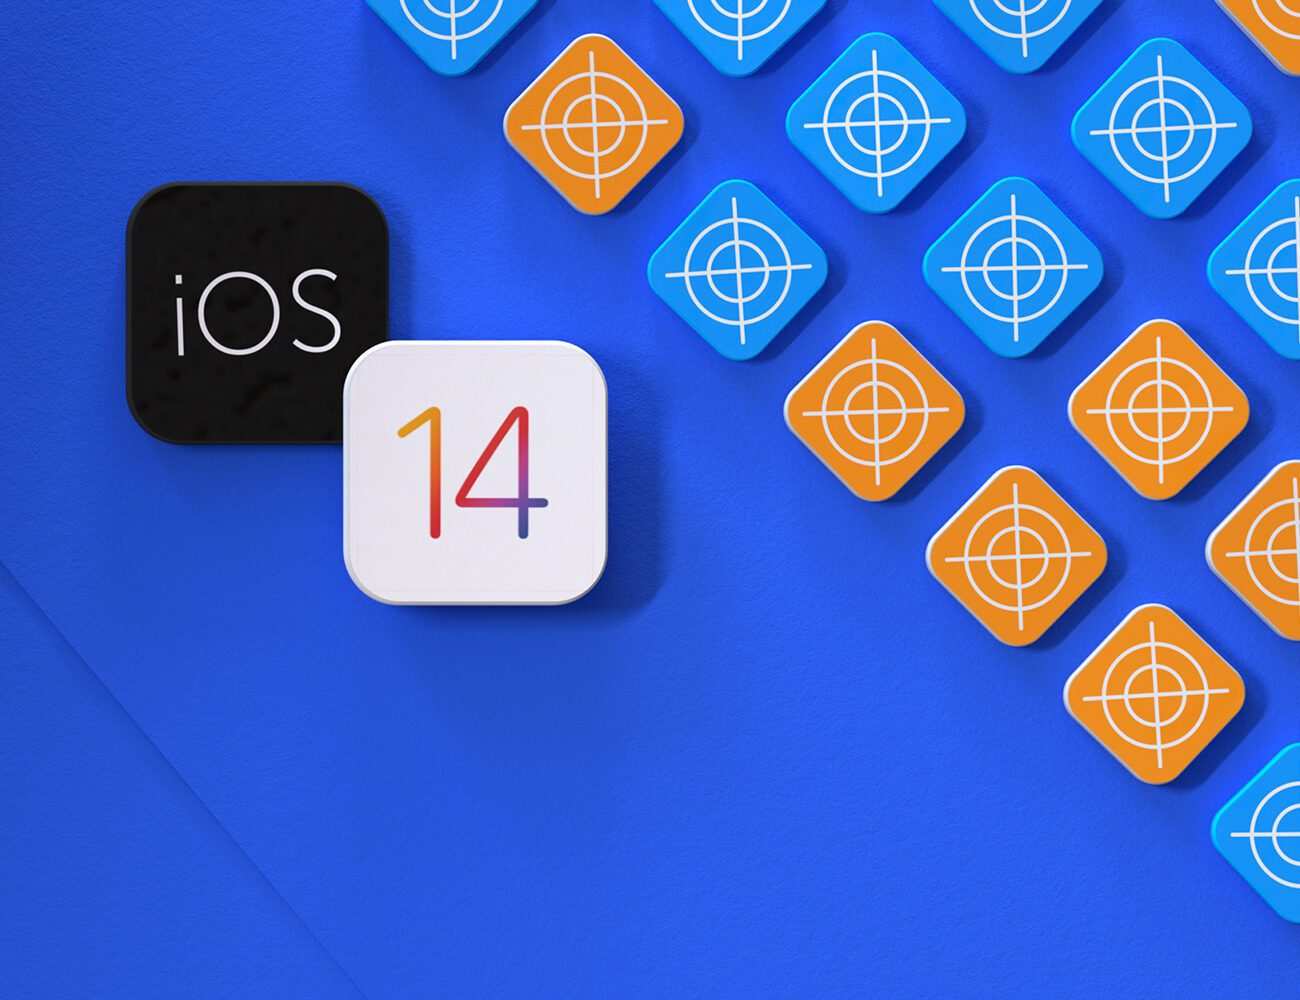 8 features of iOS 14 that will affect ASO and marketing